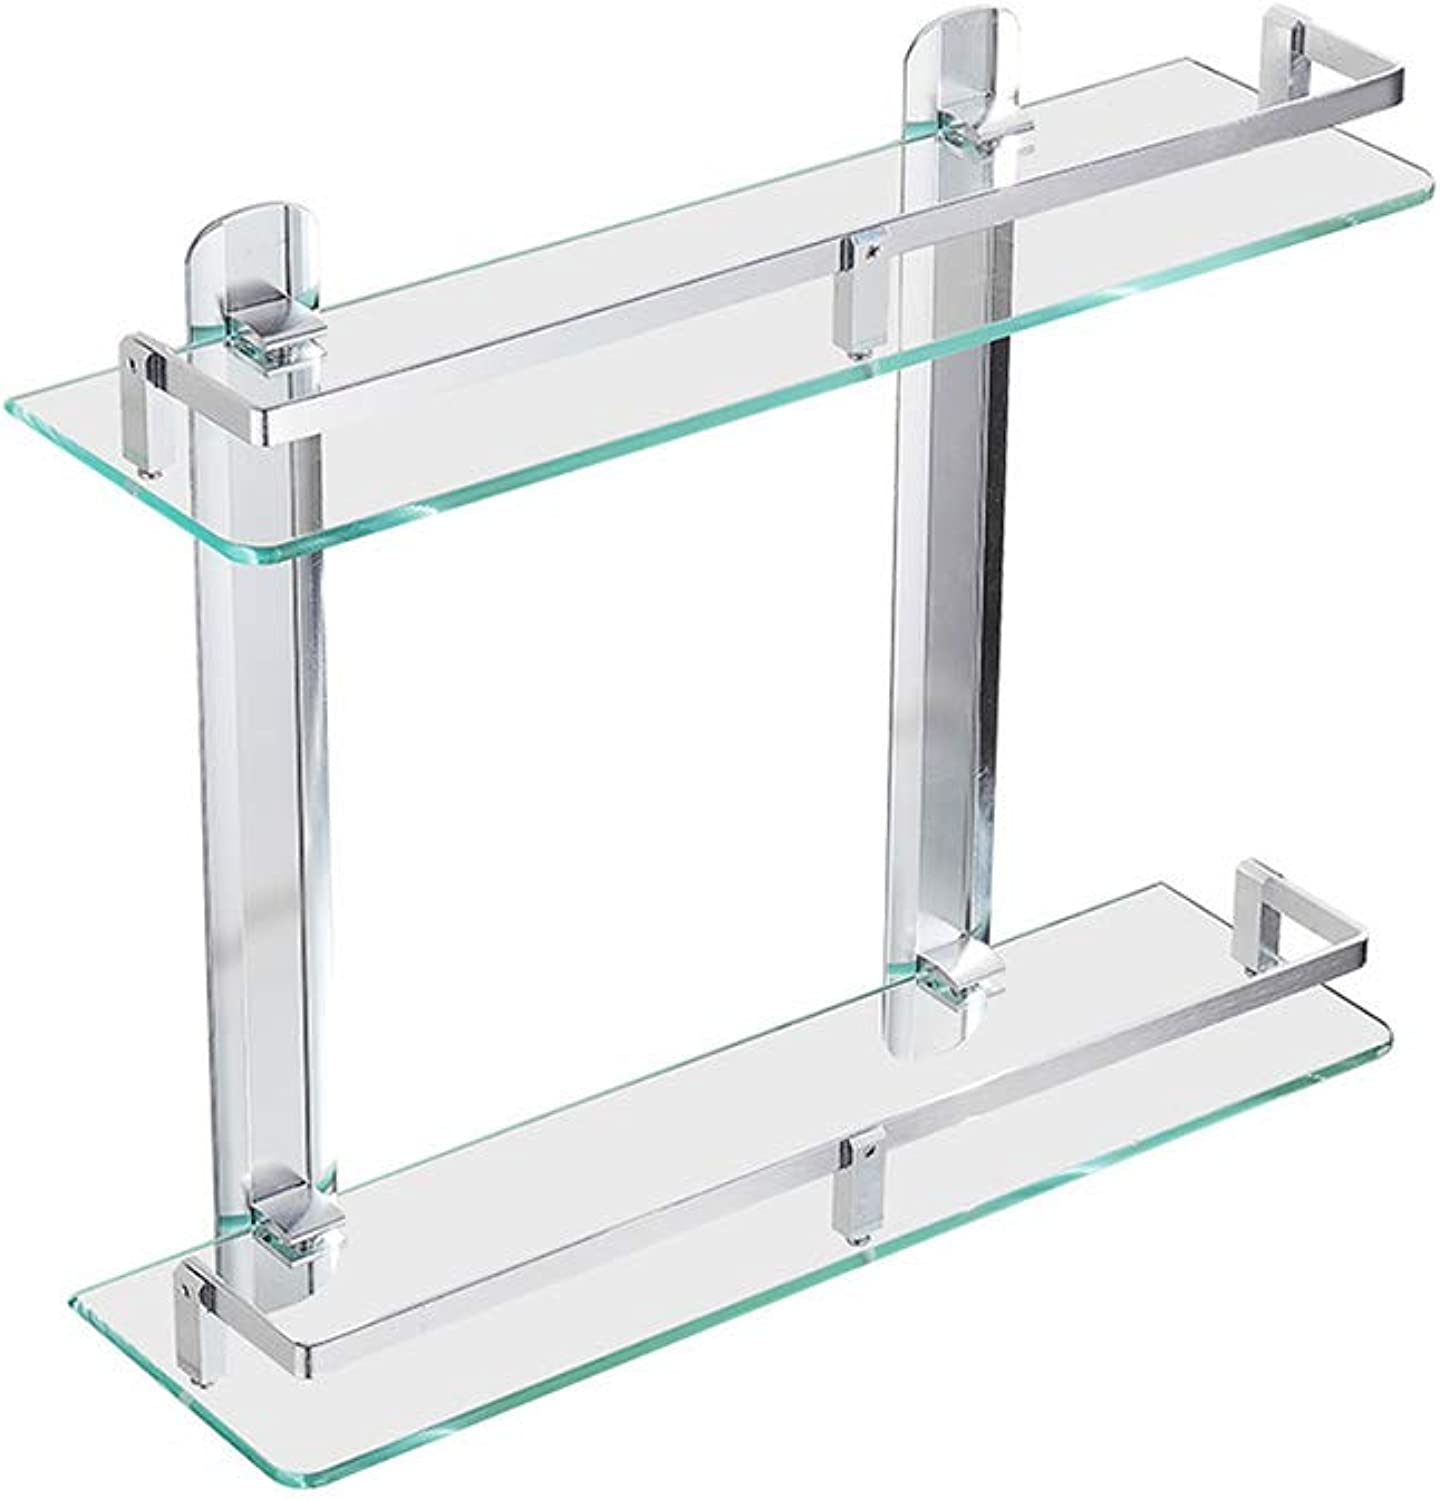 Bathroom Glass Shelf Double Tempered Glass Shelf, Bathroom Shelf, Punch-Free Wall Mount Mirror Front Frame with Space Aluminum Connecting Rod 40 cm Bathroom Shelves